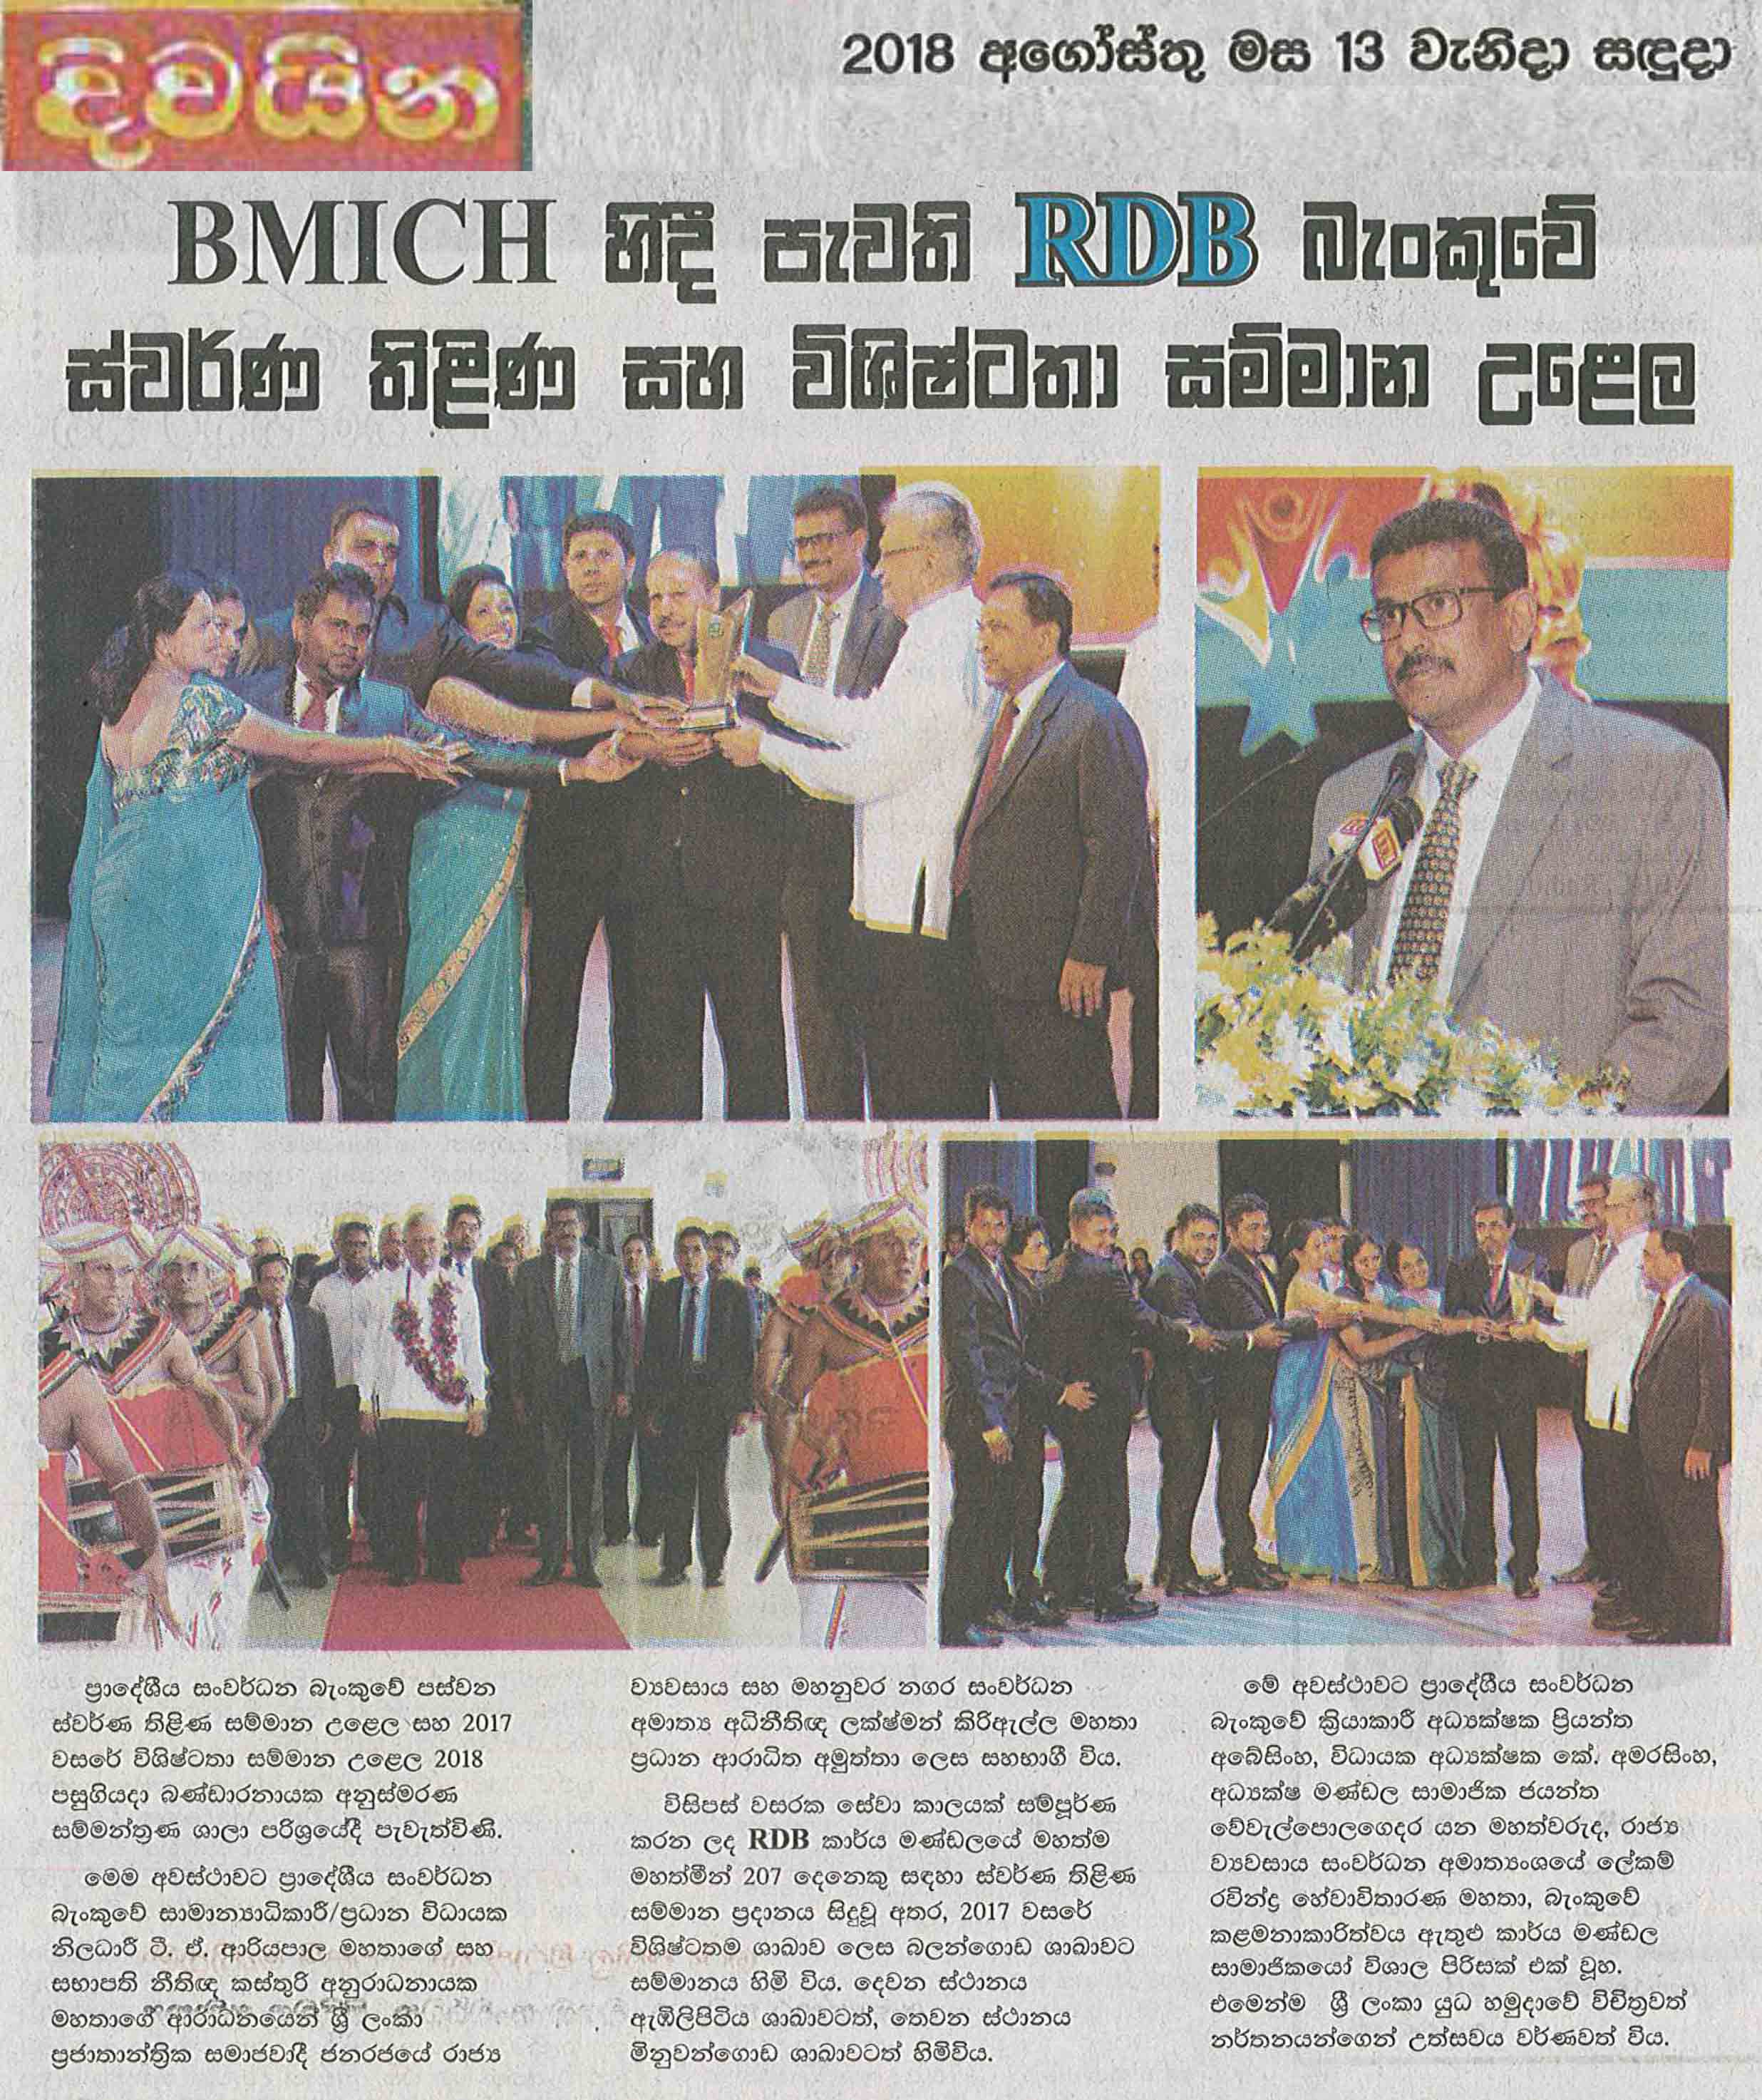 RDB Bank Golden Awards And Excellence Awards Ceremony At